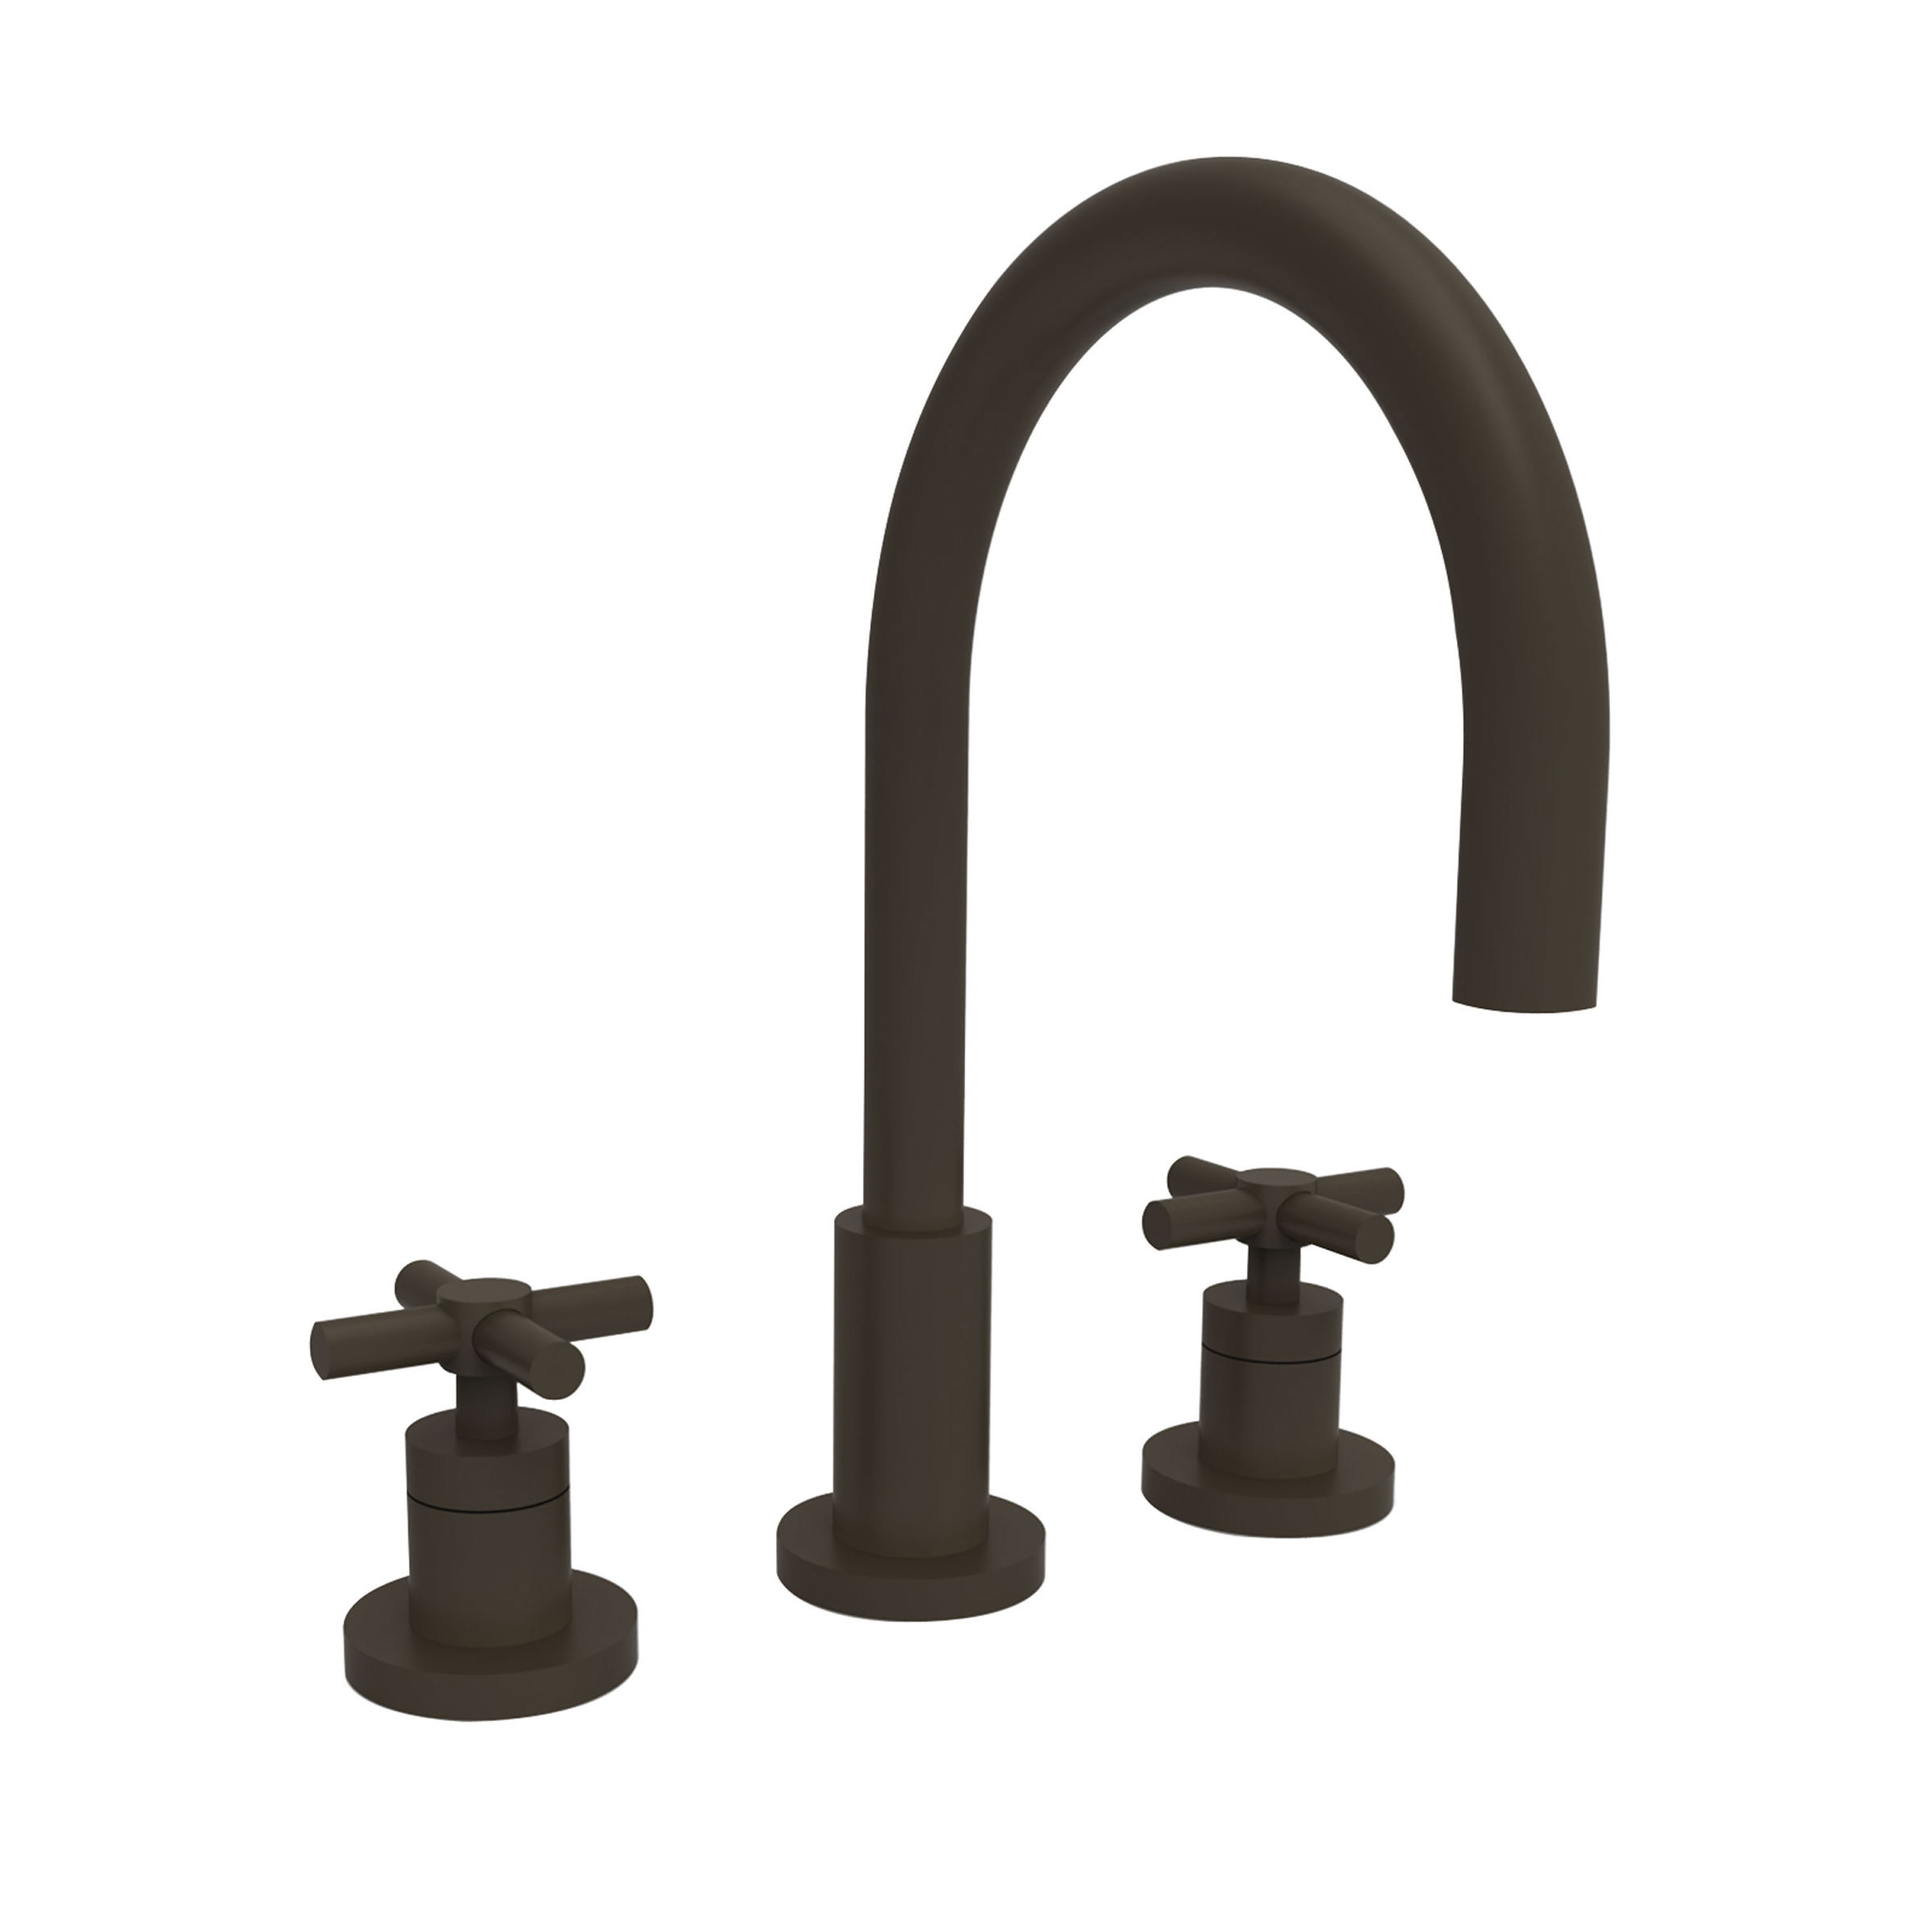 Modern gold and brass fixtures for the bathroom apartment therapy - Newport Brass 990 54 Gloss Black East Linear Double Handle Widespread Lavatory Faucet With Metal Cross Handles